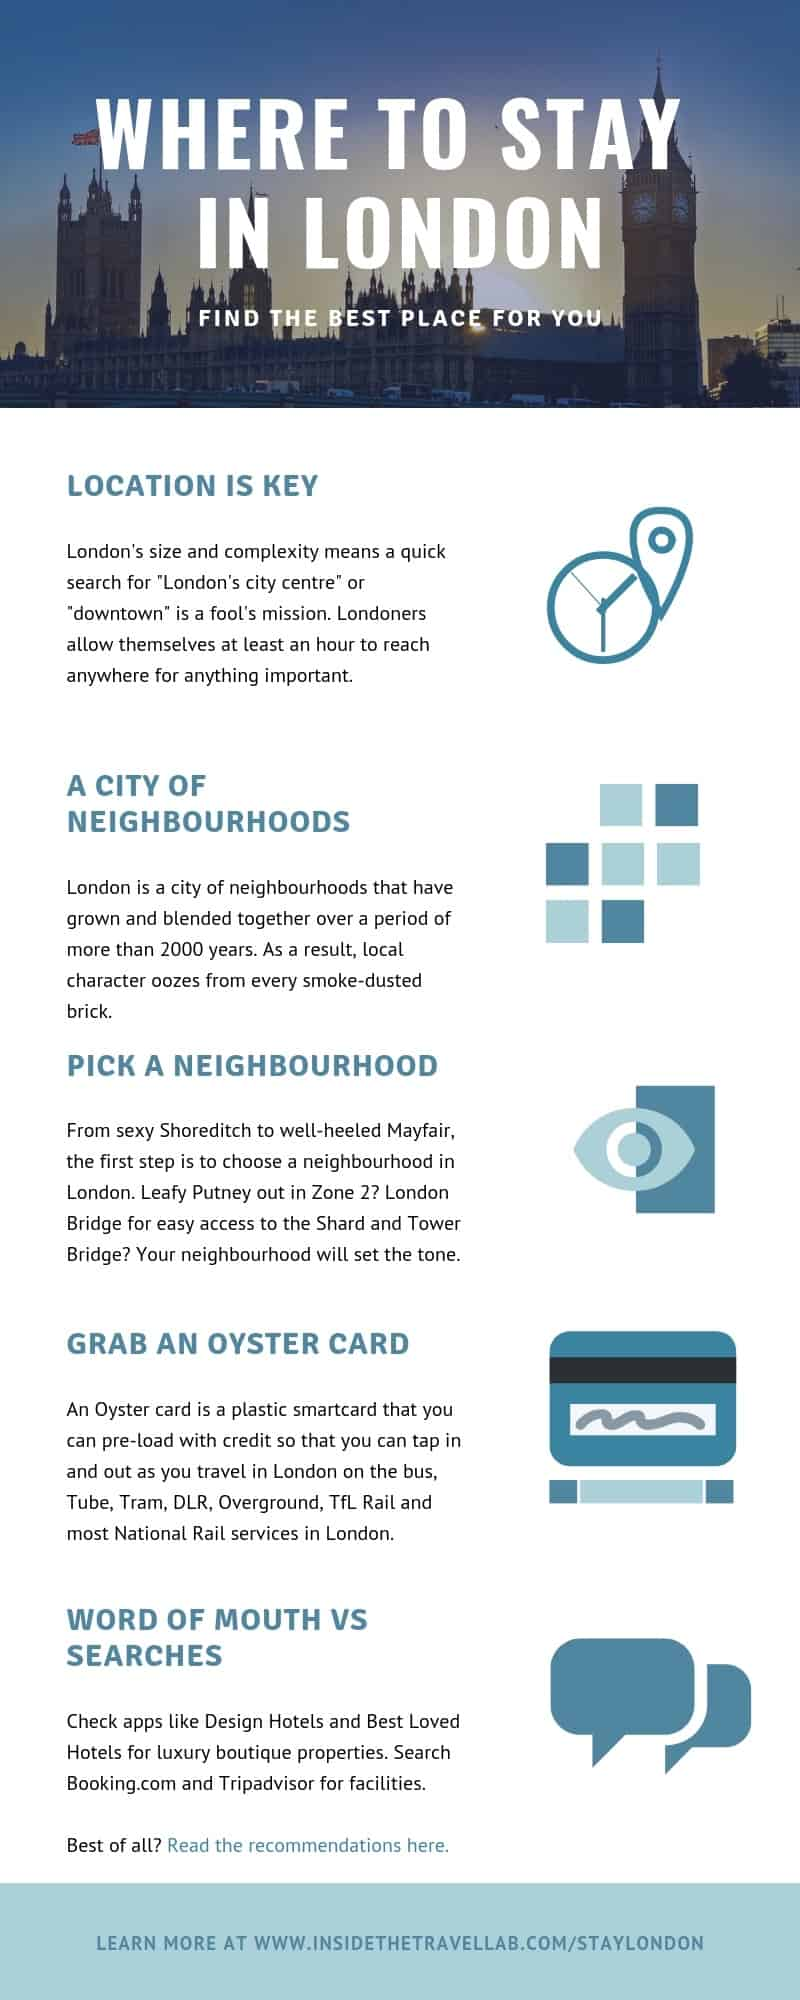 Clear and beautiful infographic on where to stay in London